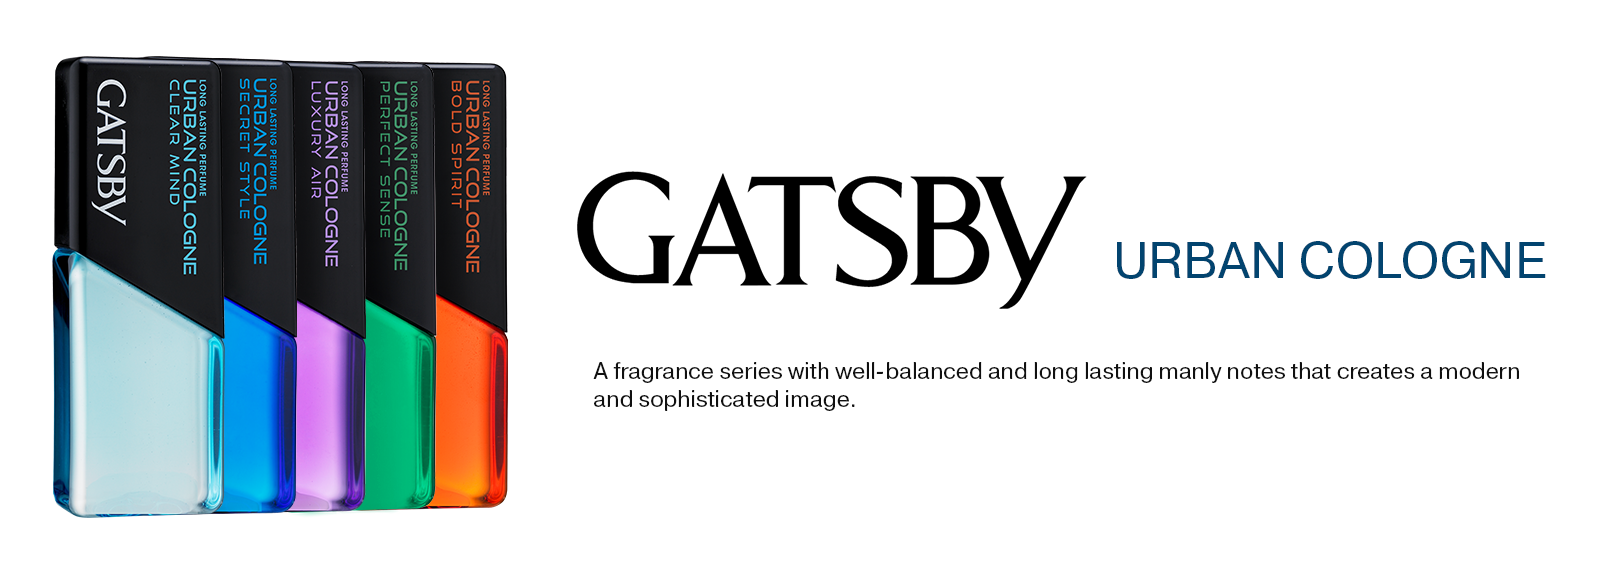 GATSBY COLOGNE